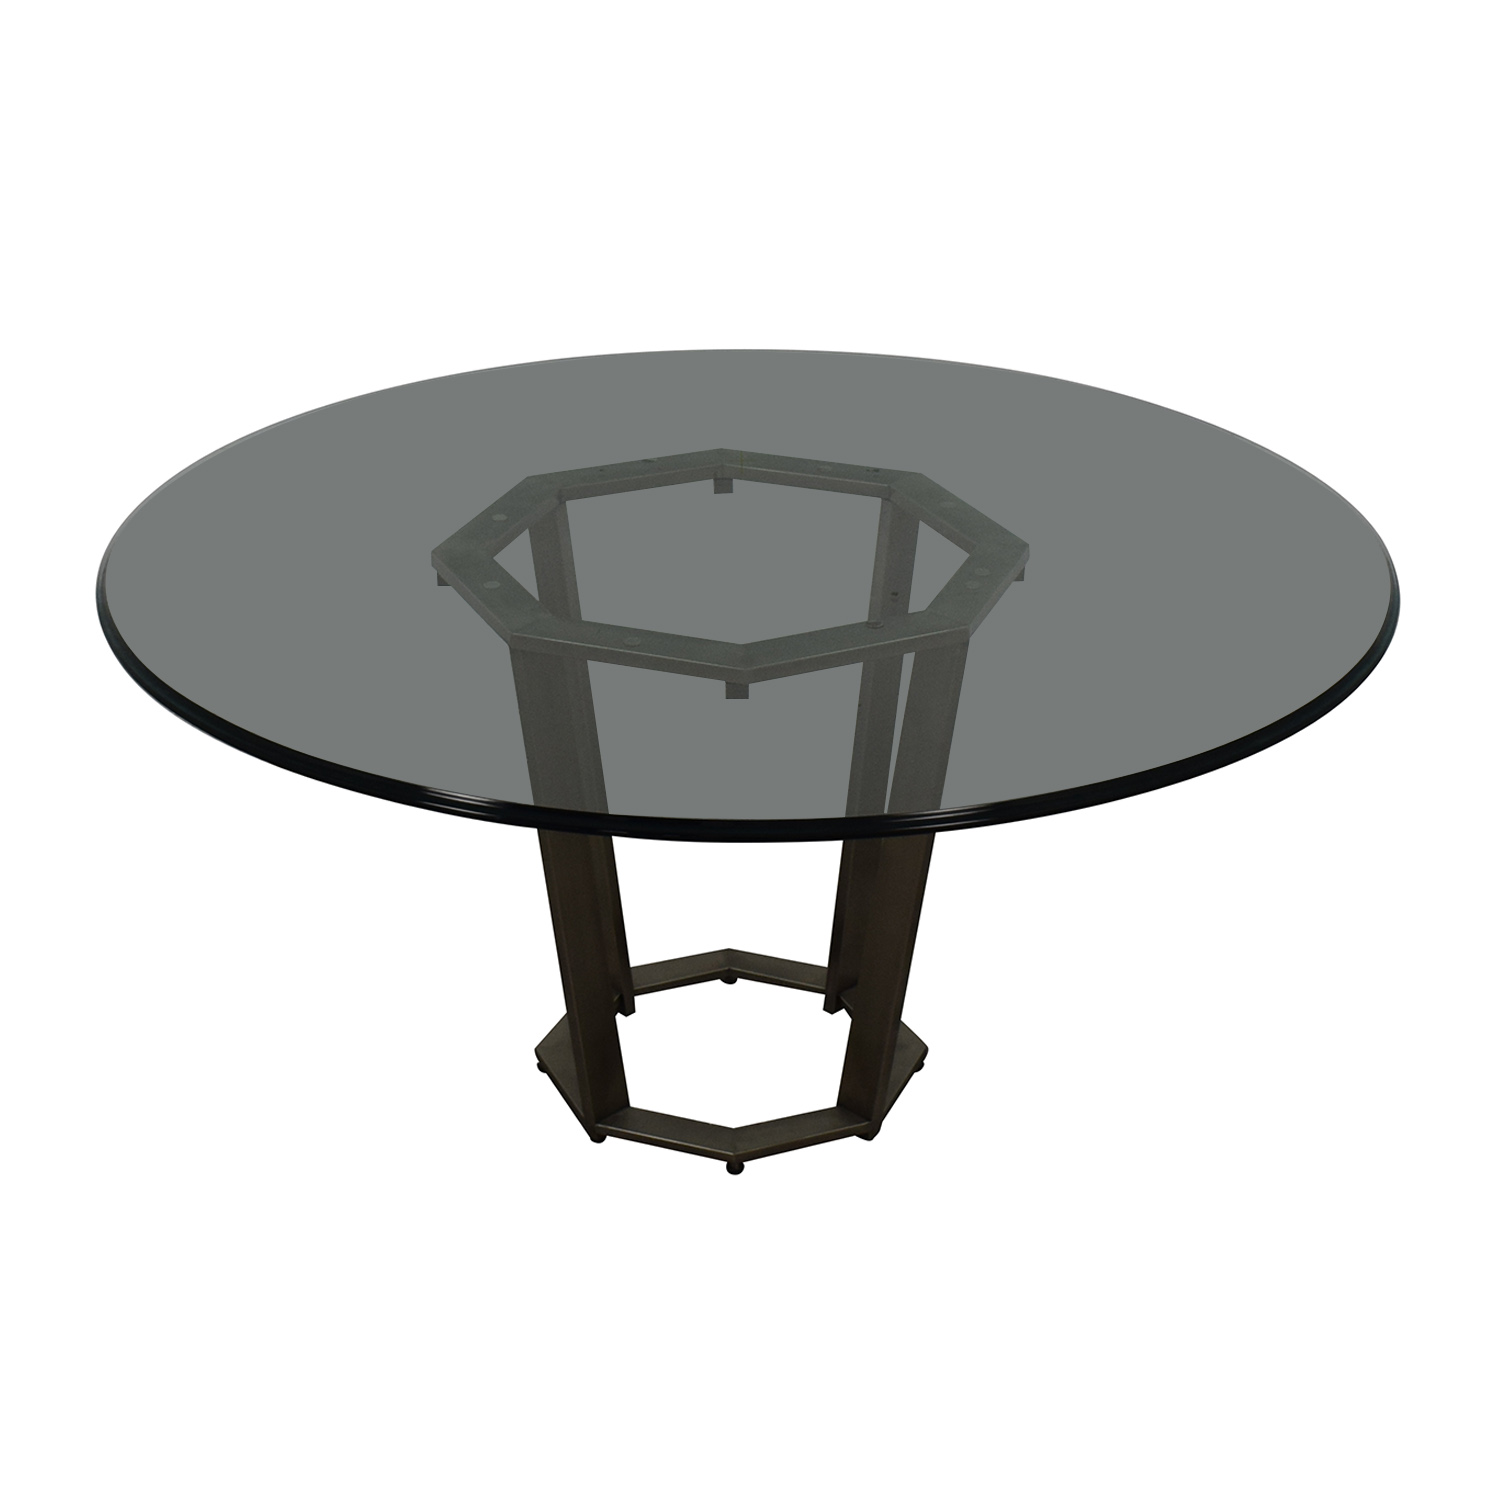 shop  Round Glass Dining Table online